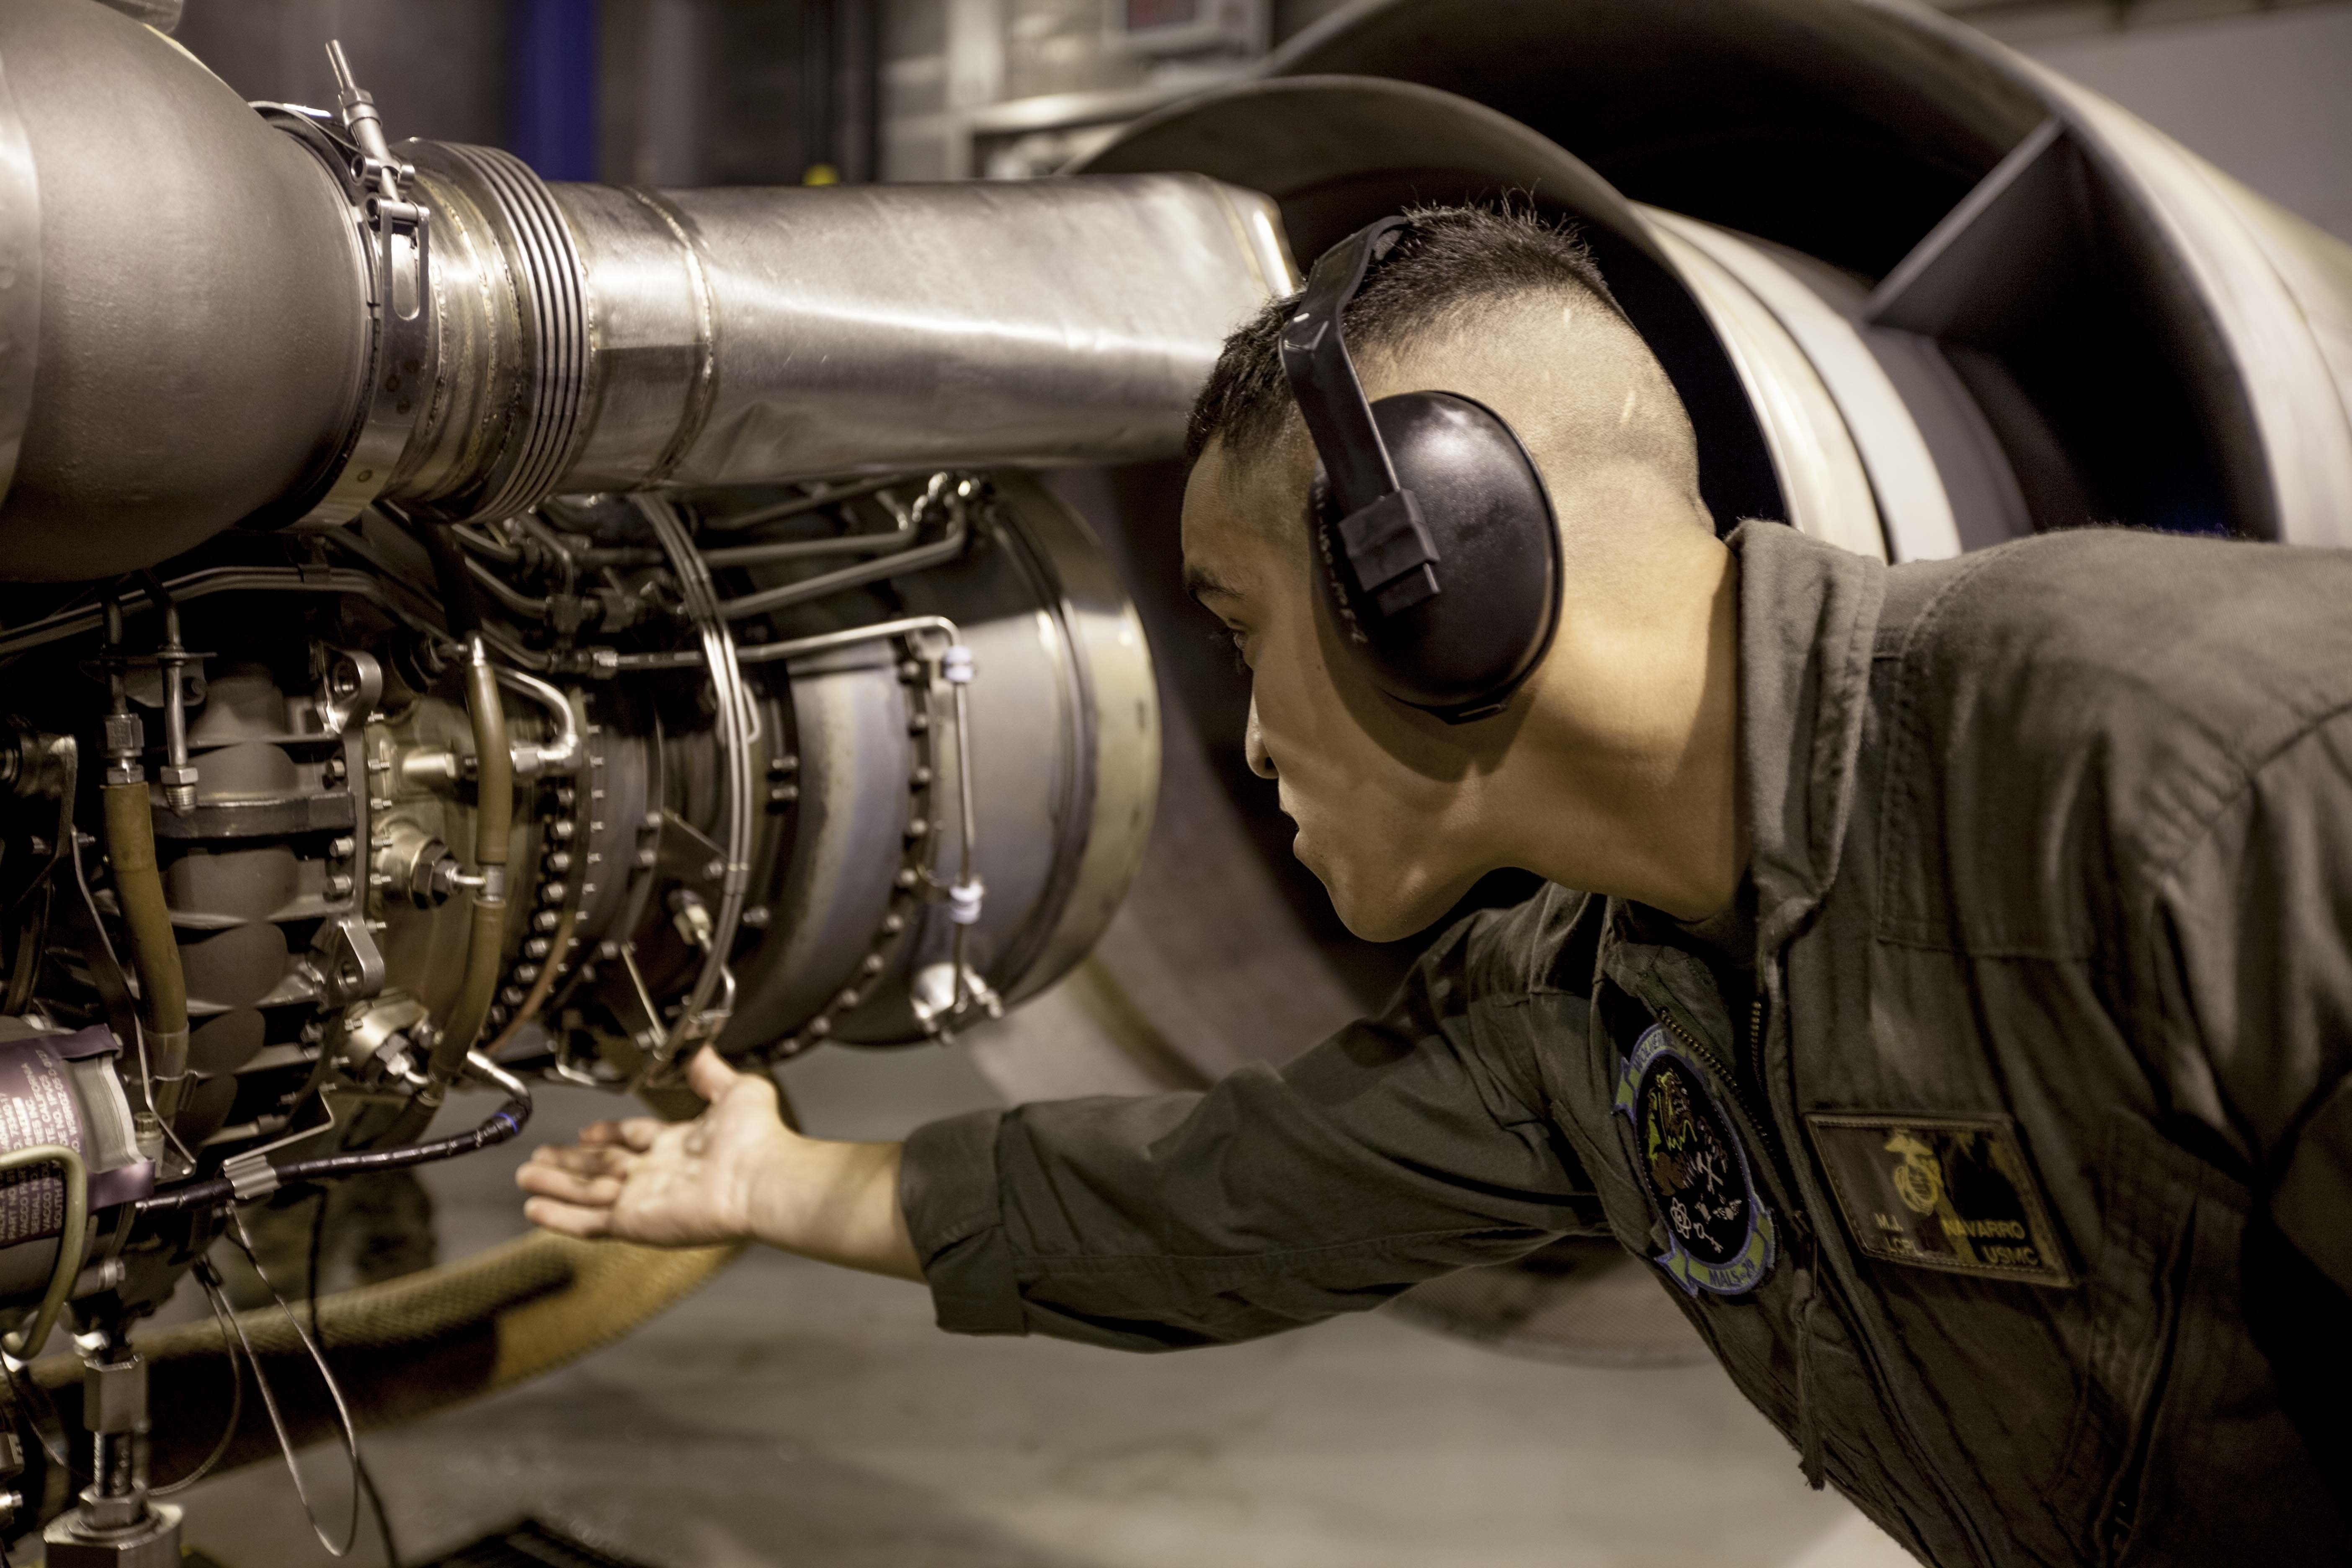 U.S. Marine Corps Lance Cpl. Manuel J. Navarro, a helicopter power plant mechanic assigned to Marine Aviation Logistics Squadron (MALS) 29, checks an AH-1W Super Cobra and a UH-1Y Venom engine for fluid and air leaks aboard Marine Corps Air Station New River, N.C., Oct 18, 2016. MALS-29's mission is to provide aviation logistics support, guidance, planning, and direction to other squadrons within the Marine Aircraft Group, as well as logistics support for Navy funded equipment in the supporting Marine Wing Support Squadron, Marine Air Control Group, and Marine Aircraft Wing/Mobile Calibration Complex. US Marine Corps photo.